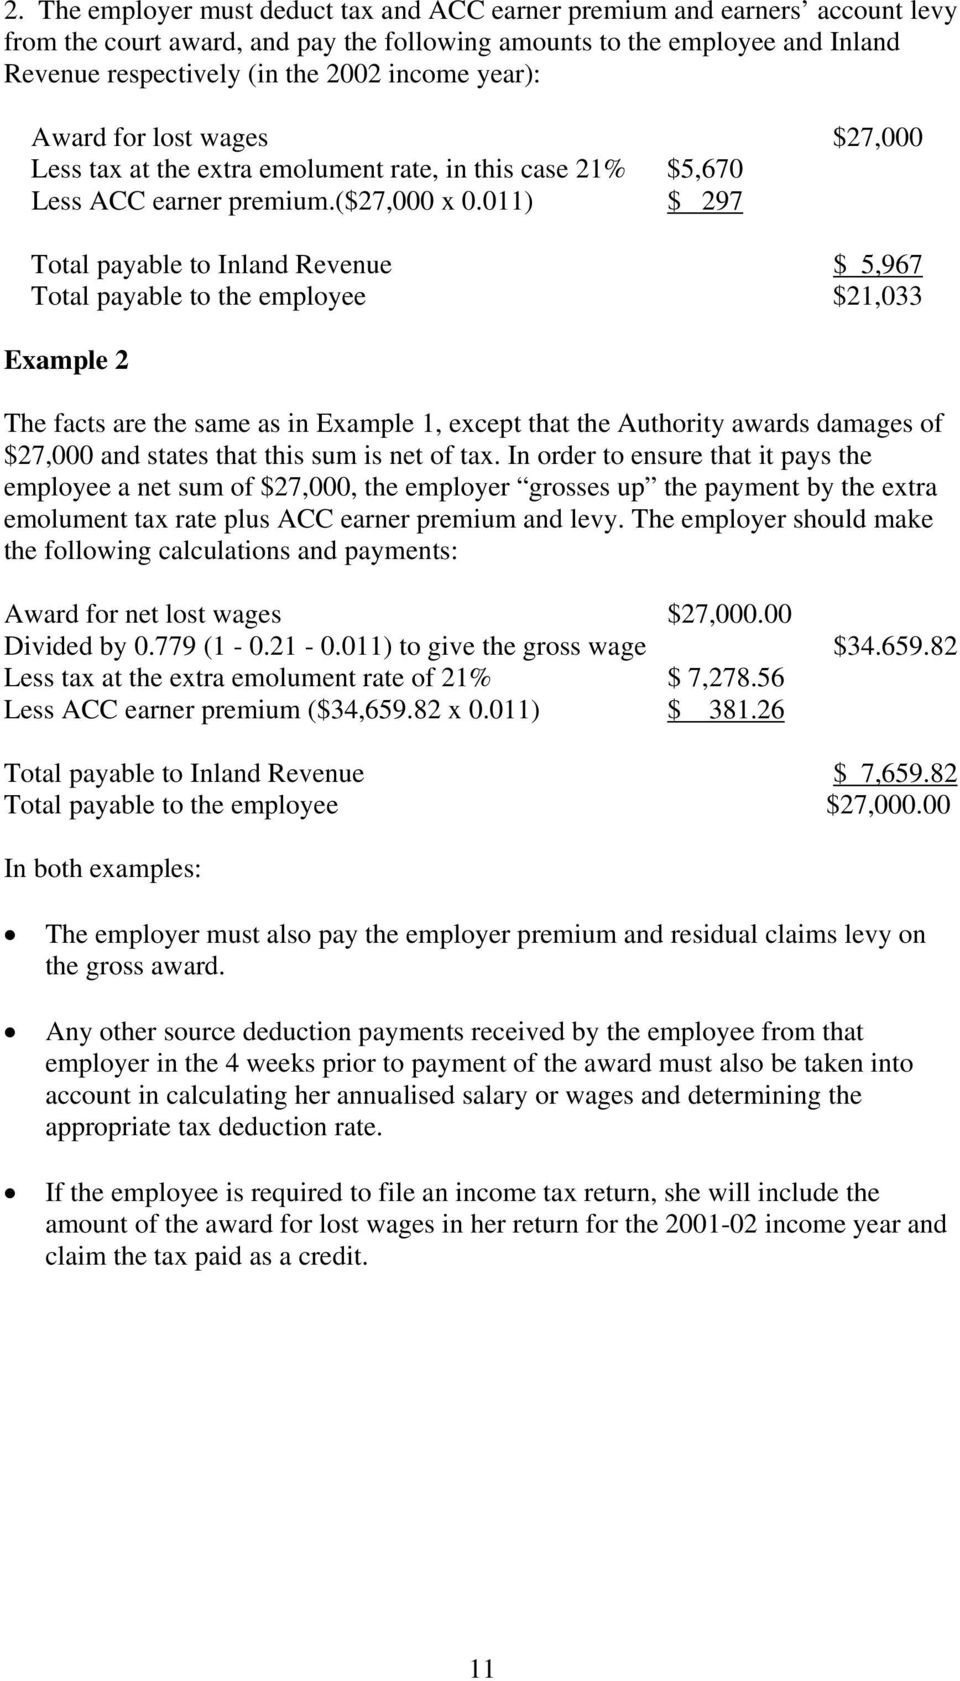 011) $ 297 Total payable to Inland Revenue $ 5,967 Total payable to the employee $21,033 Example 2 The facts are the same as in Example 1, except that the Authority awards damages of $27,000 and